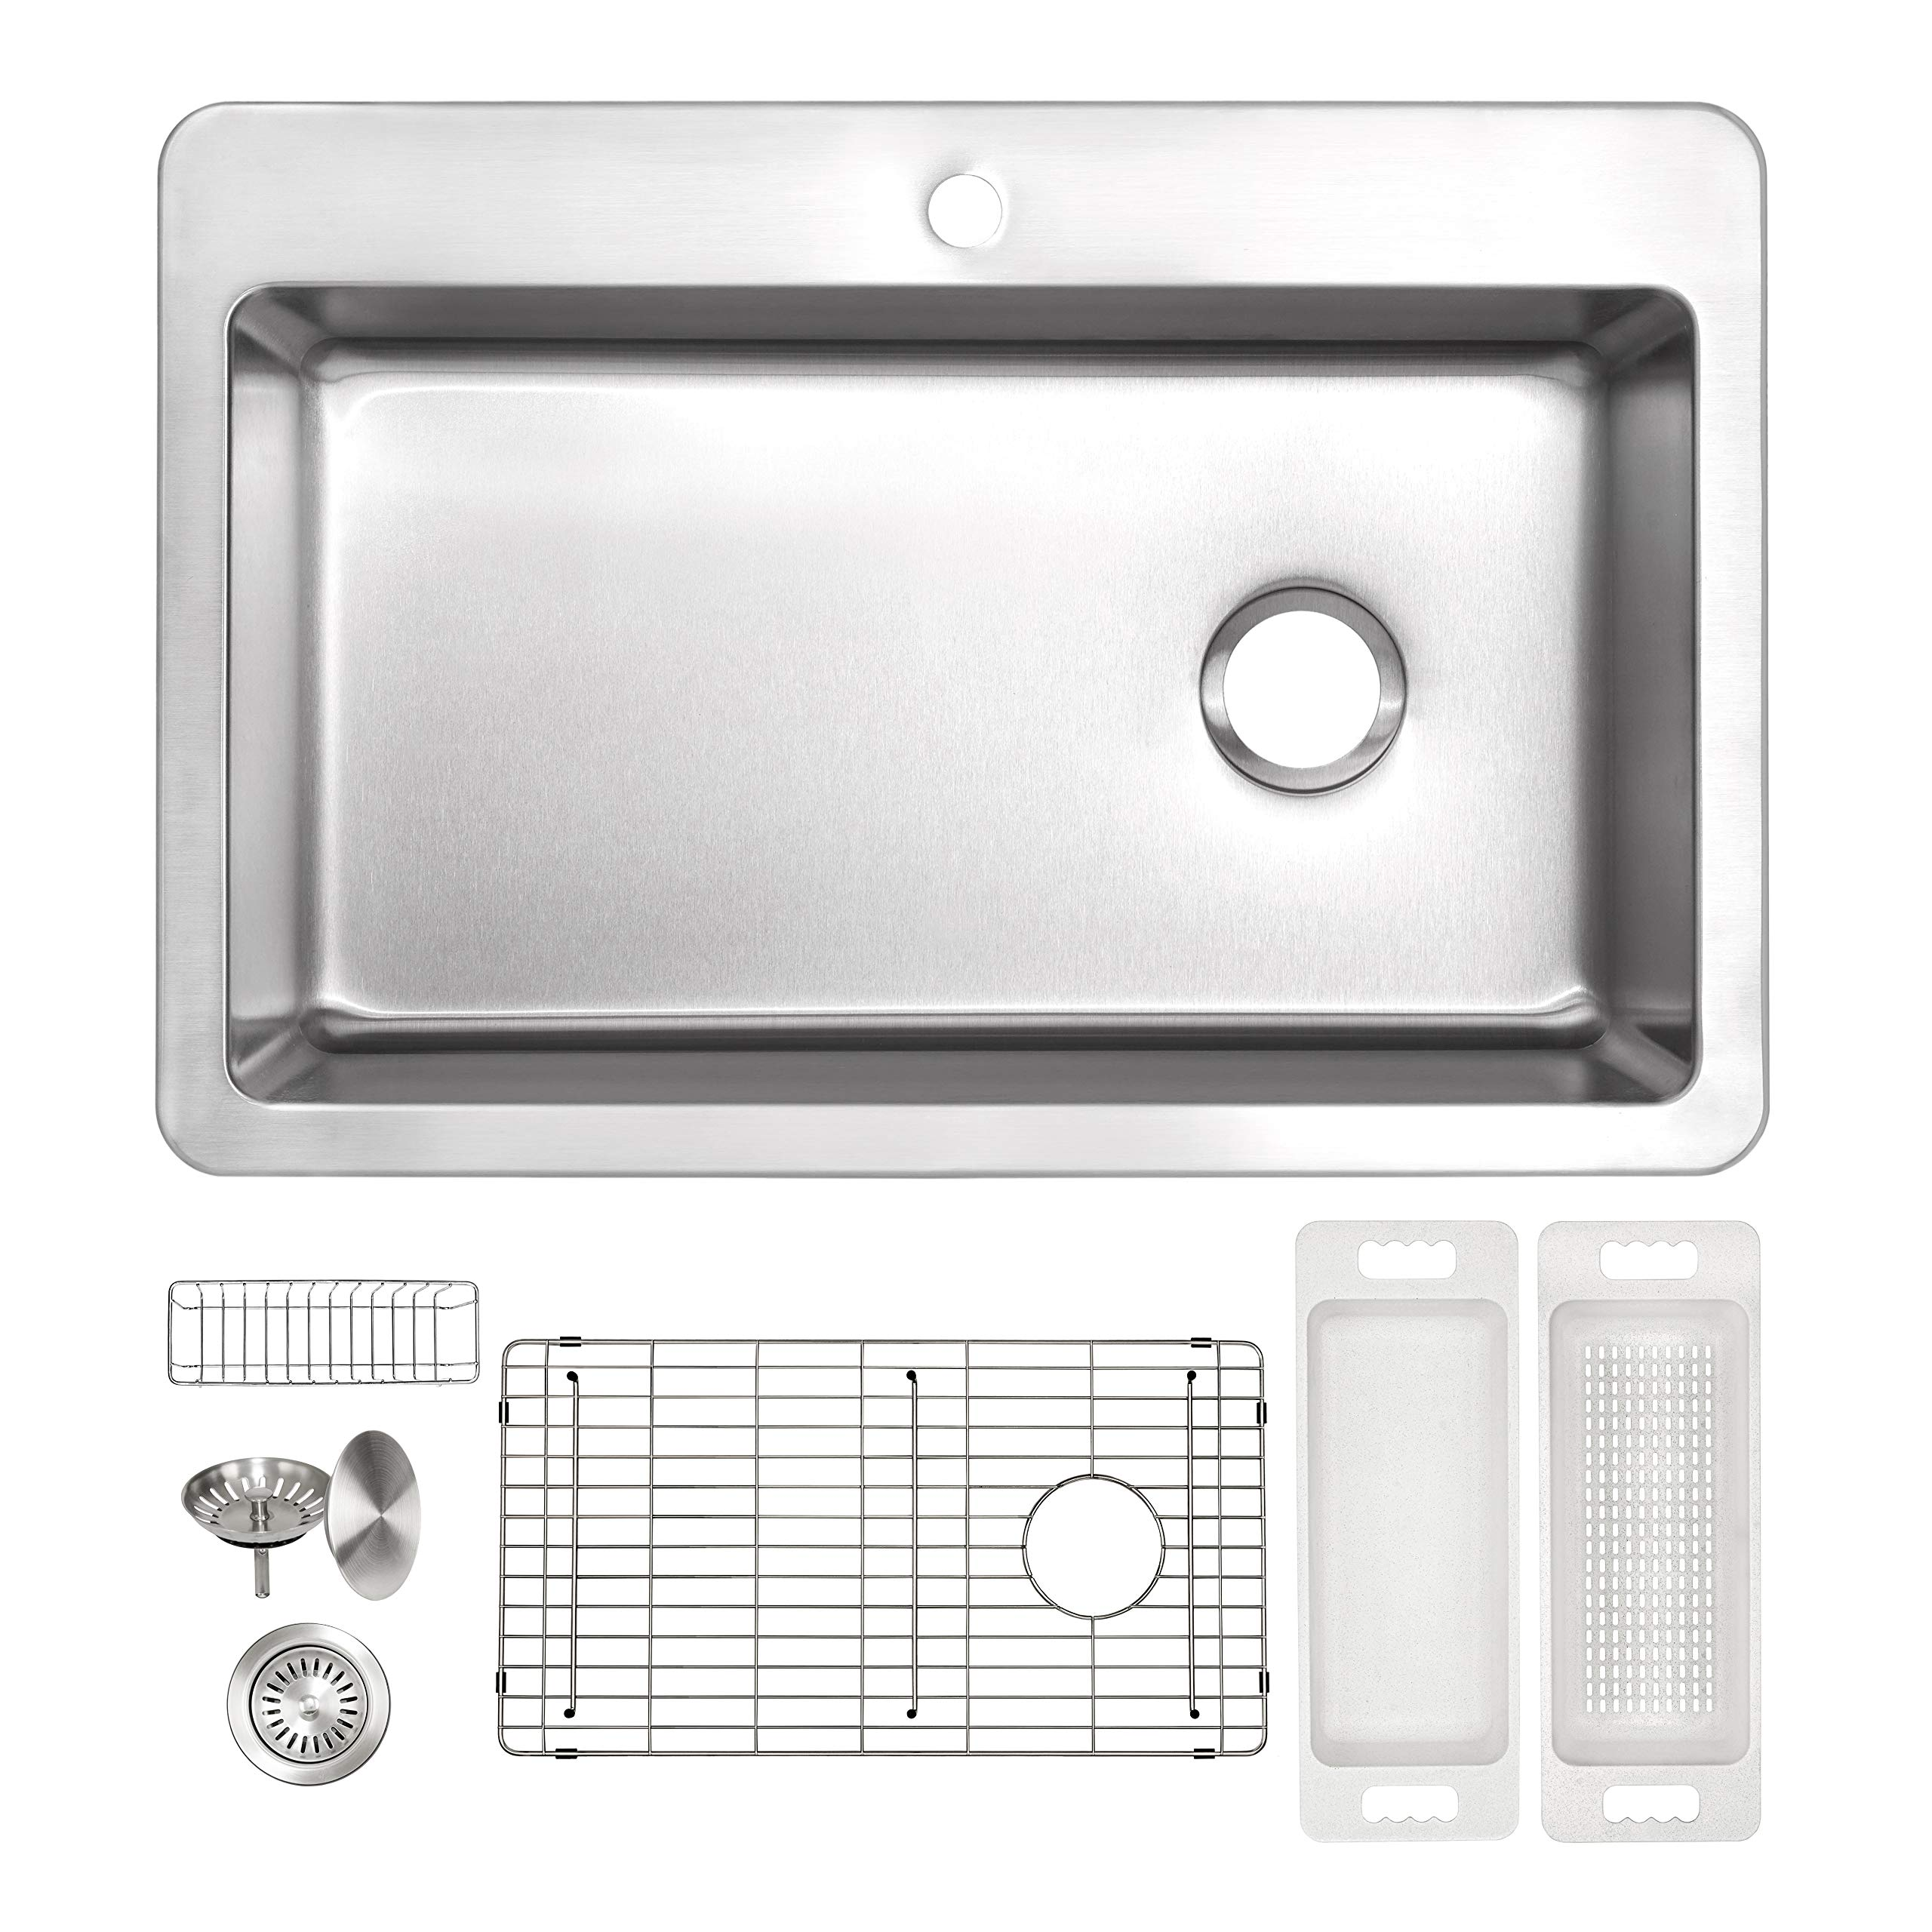 ZUHNE 16G Drop In Offset Drain Stainless Steel Kitchen Sink (33 x 22 Inch Single Over Mount) by Zuhne